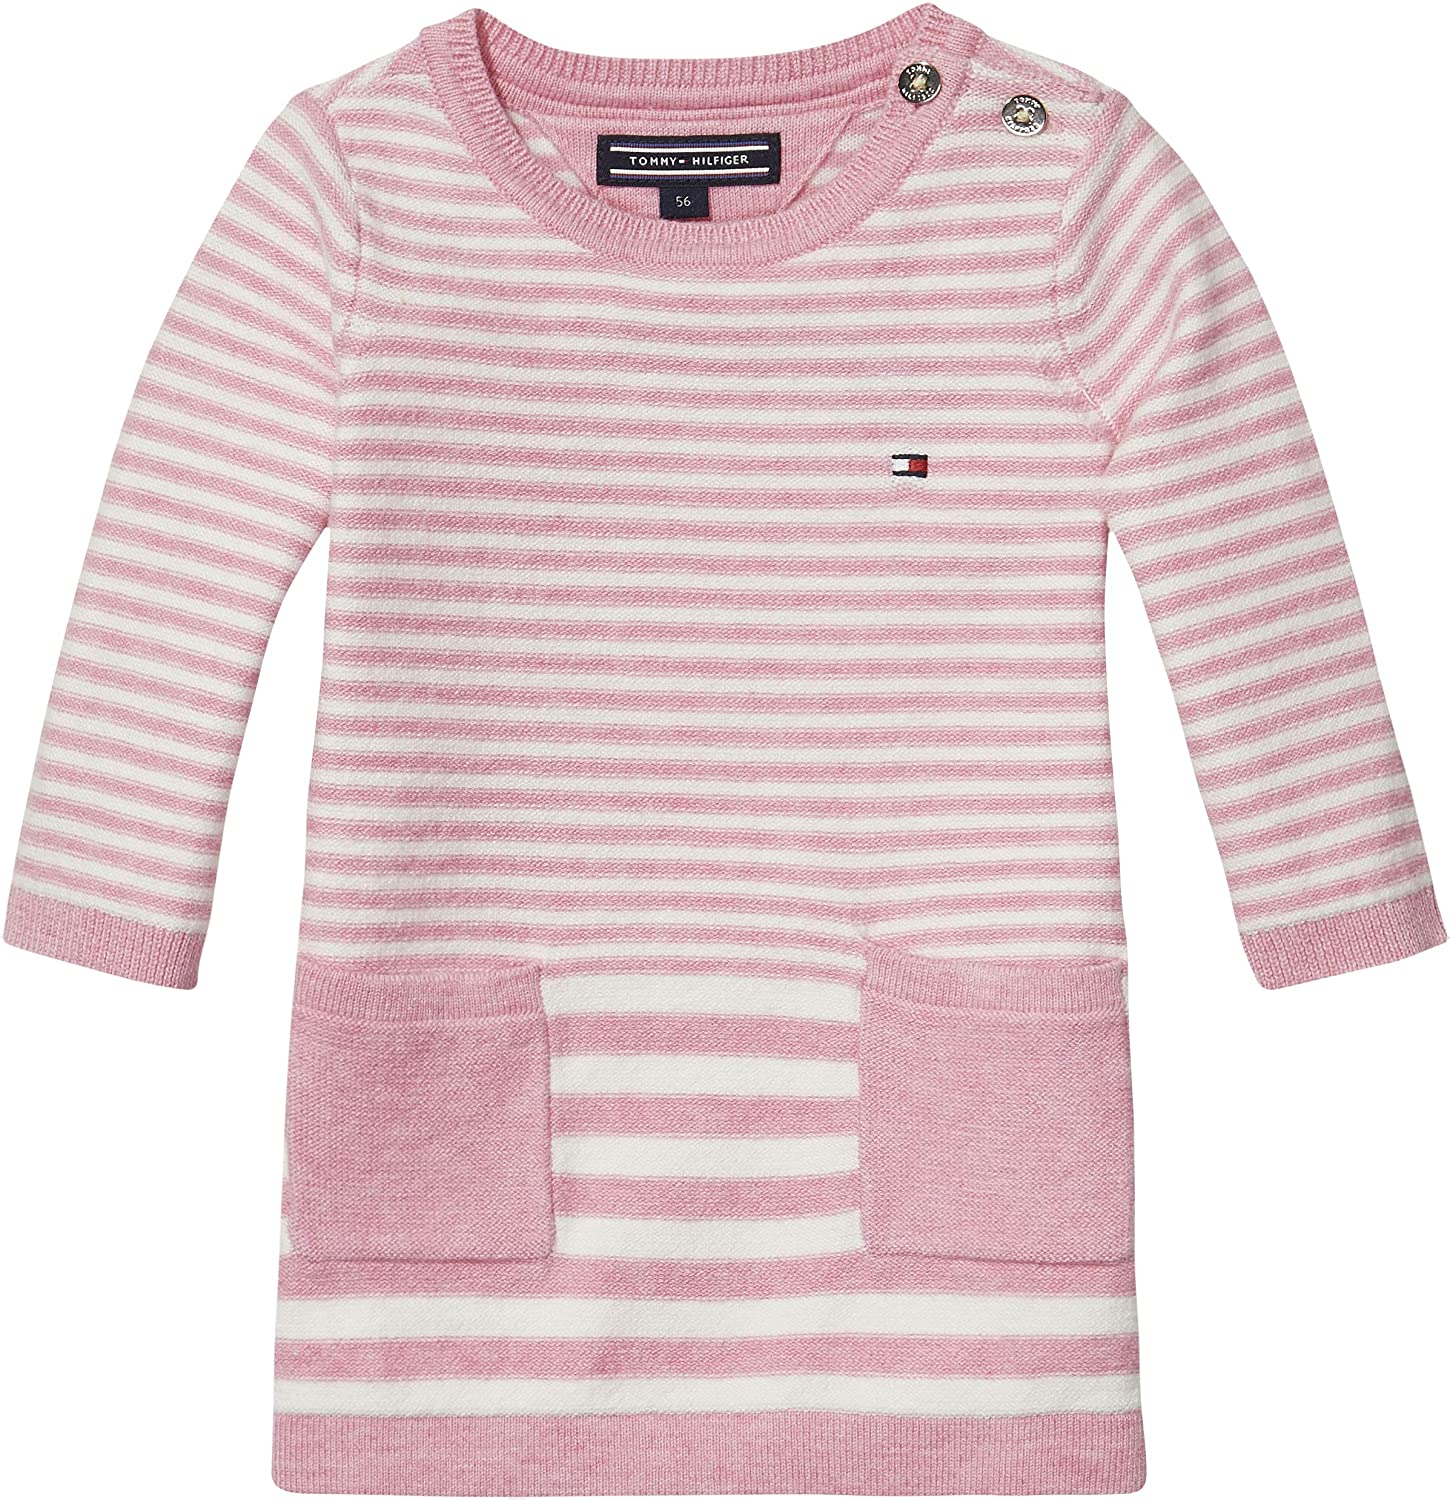 265eaf35f Tommy Hilfiger Striped Sweater Dress for Newborn Baby Girls - 0 Months,  Pink Heather/Marshmallow: Amazon.ae